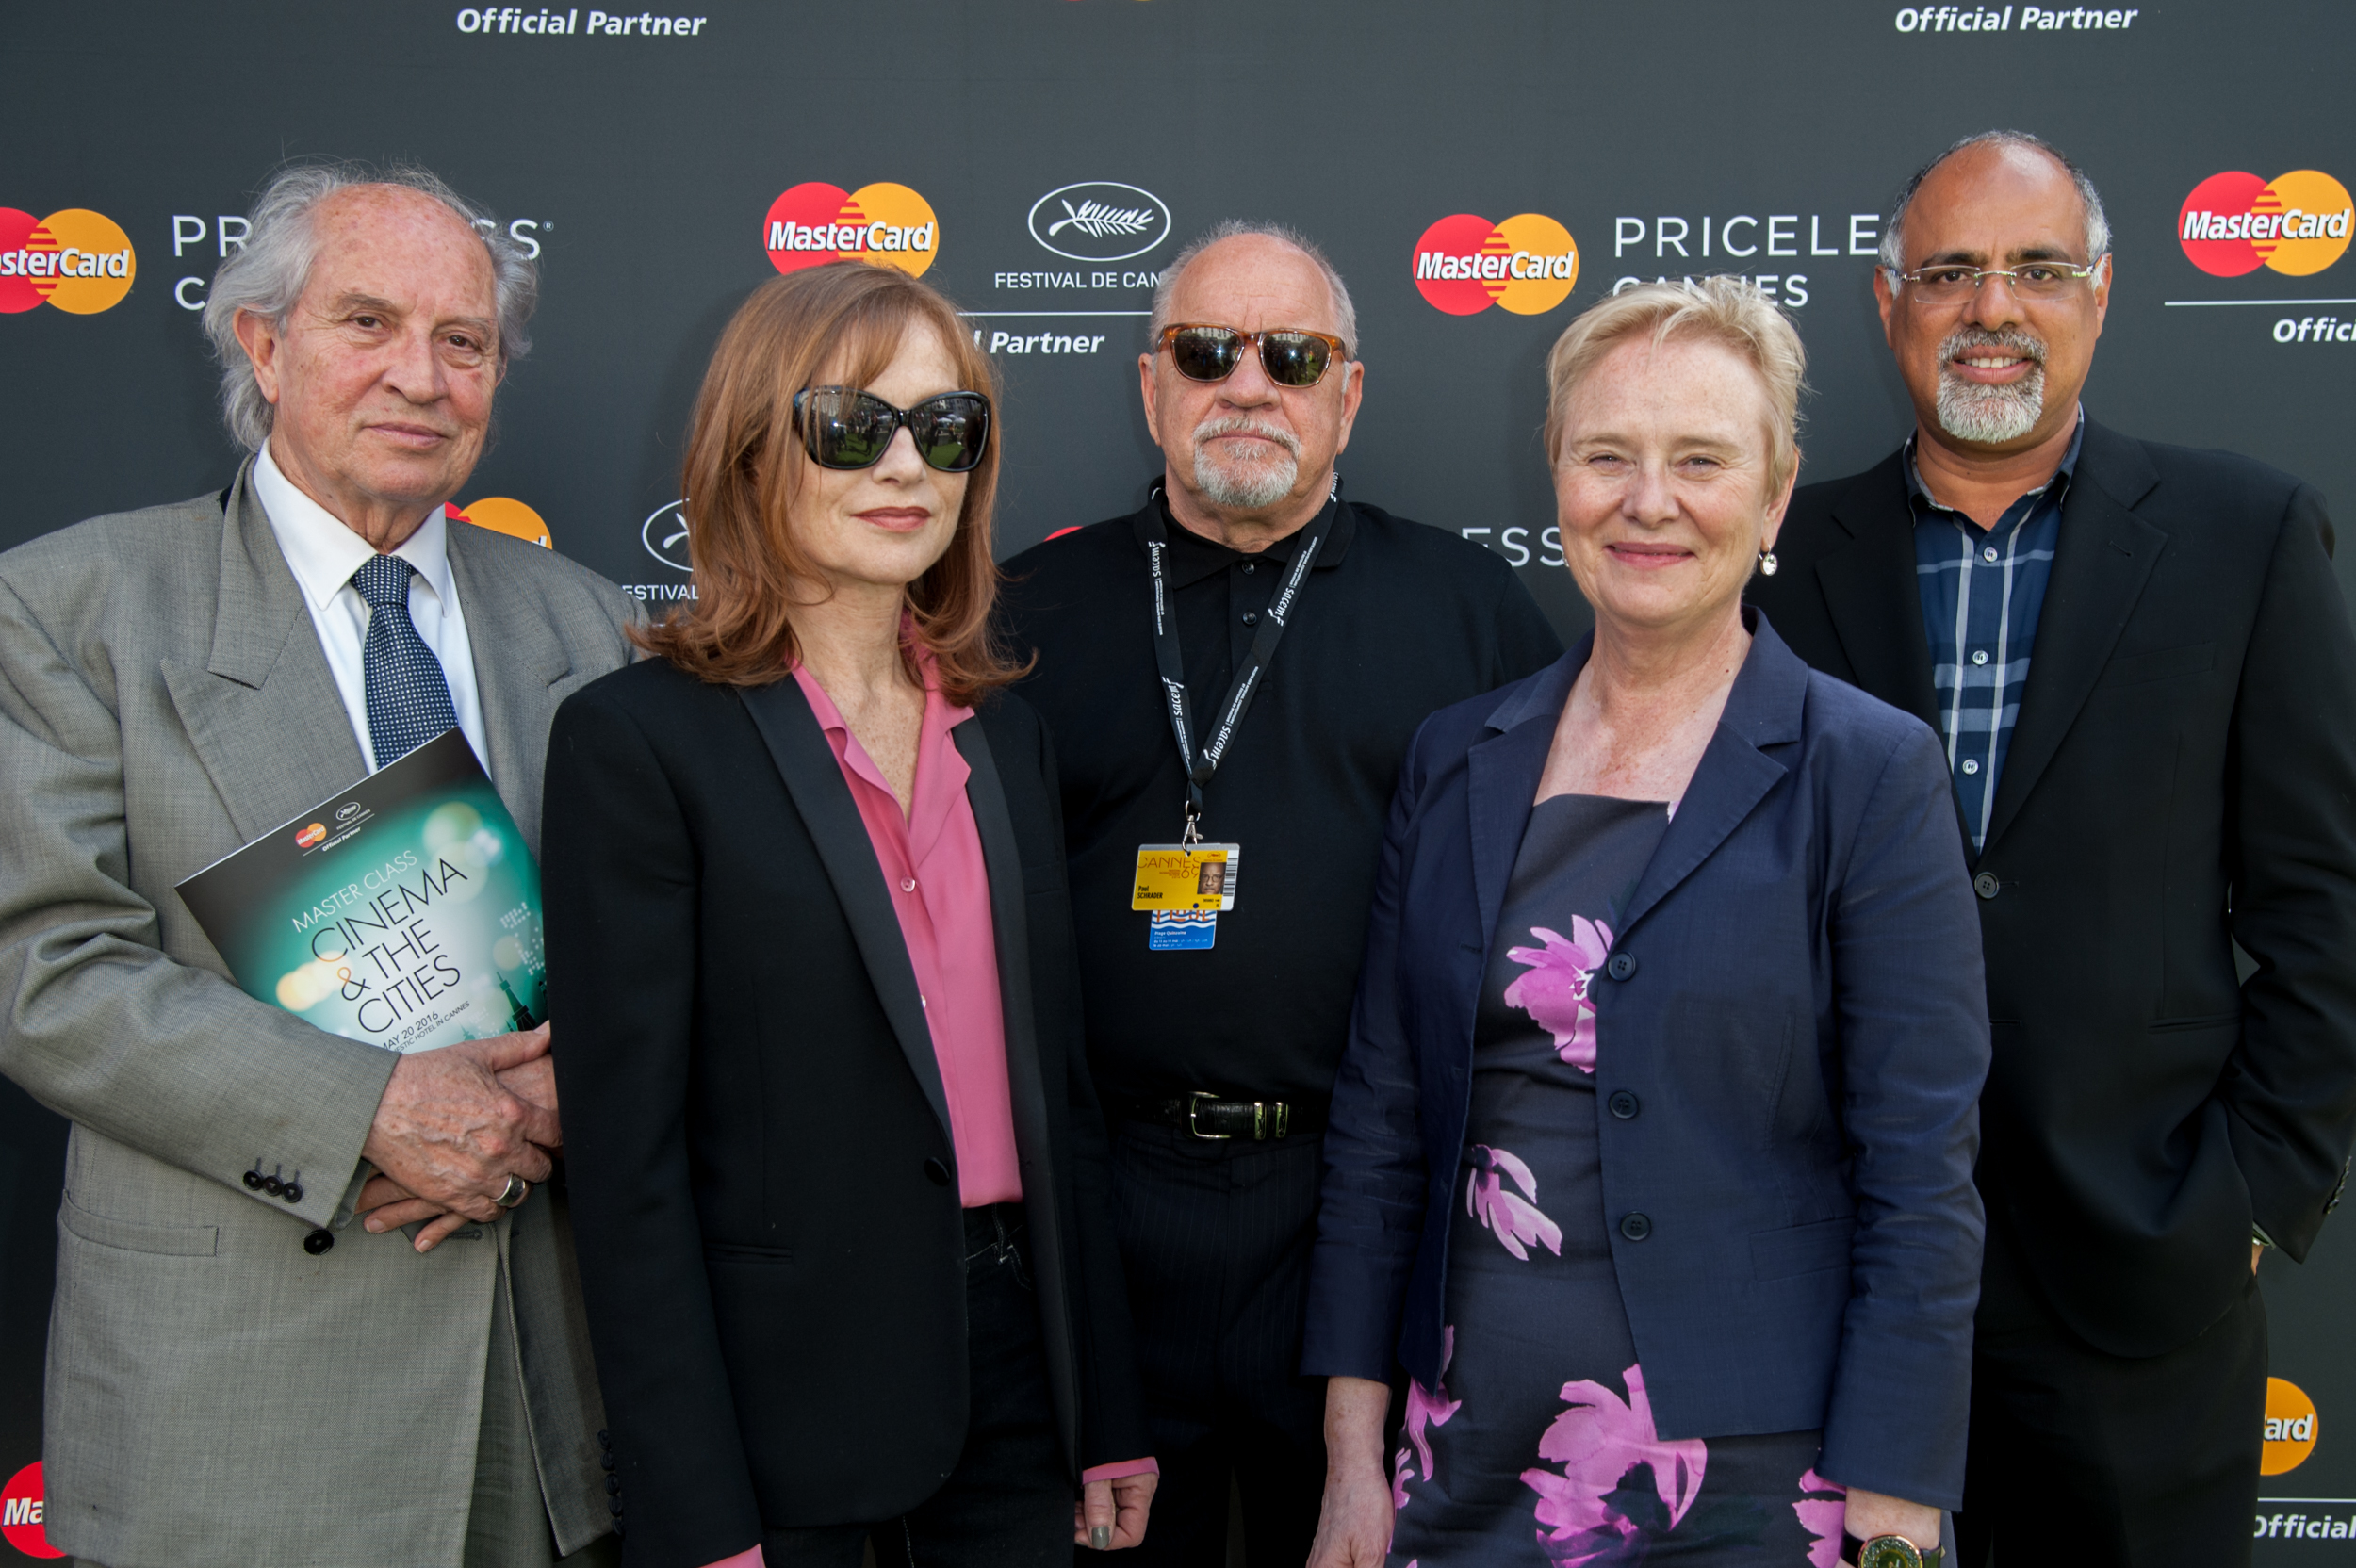 Vittorio Storaro, Isabelle Huppert, Paul Schrader, Ann Cairns, and Raja Rajamannar make up the first MasterClass on Cinema and the Cities, hosted by MasterCard at the Cannes Film Festival